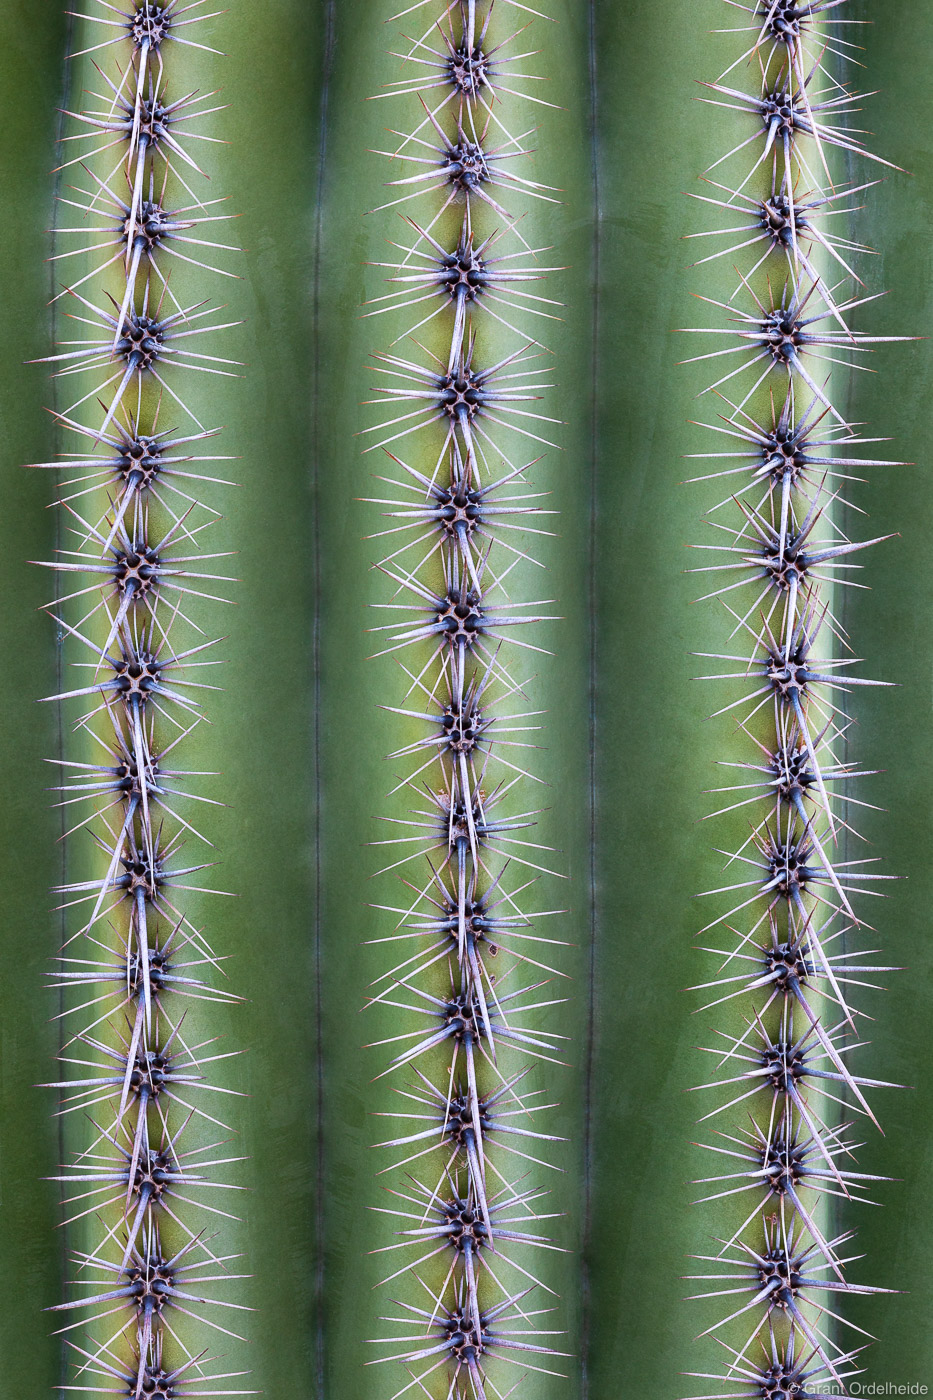 saguaro, spines, tuscan, arizona, details, cactus, catalina, state, park, photo